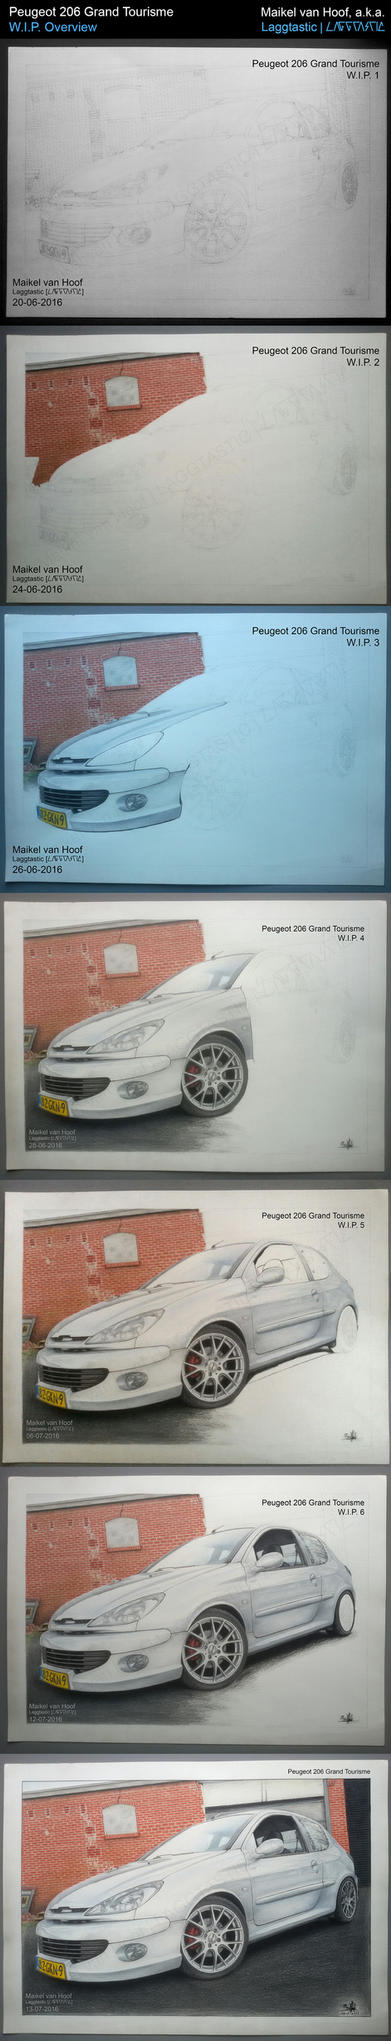 Peugeot 206 Grand Tourisme WIP overview by Laggtastic